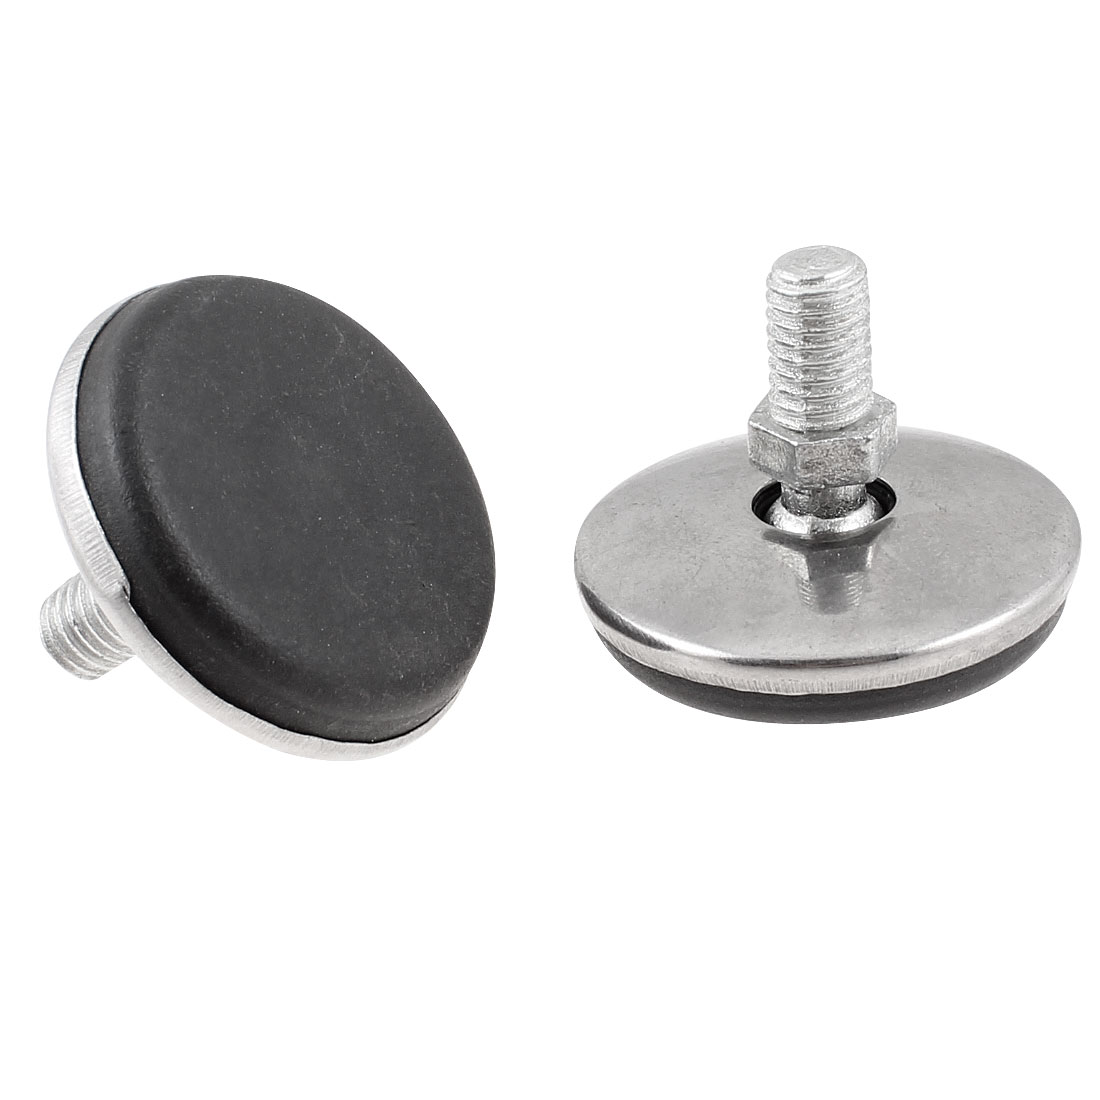 2 Pcs Metal Threaded Rod Round Plastic Base Leveling Foot 8mmx31mmx36mm